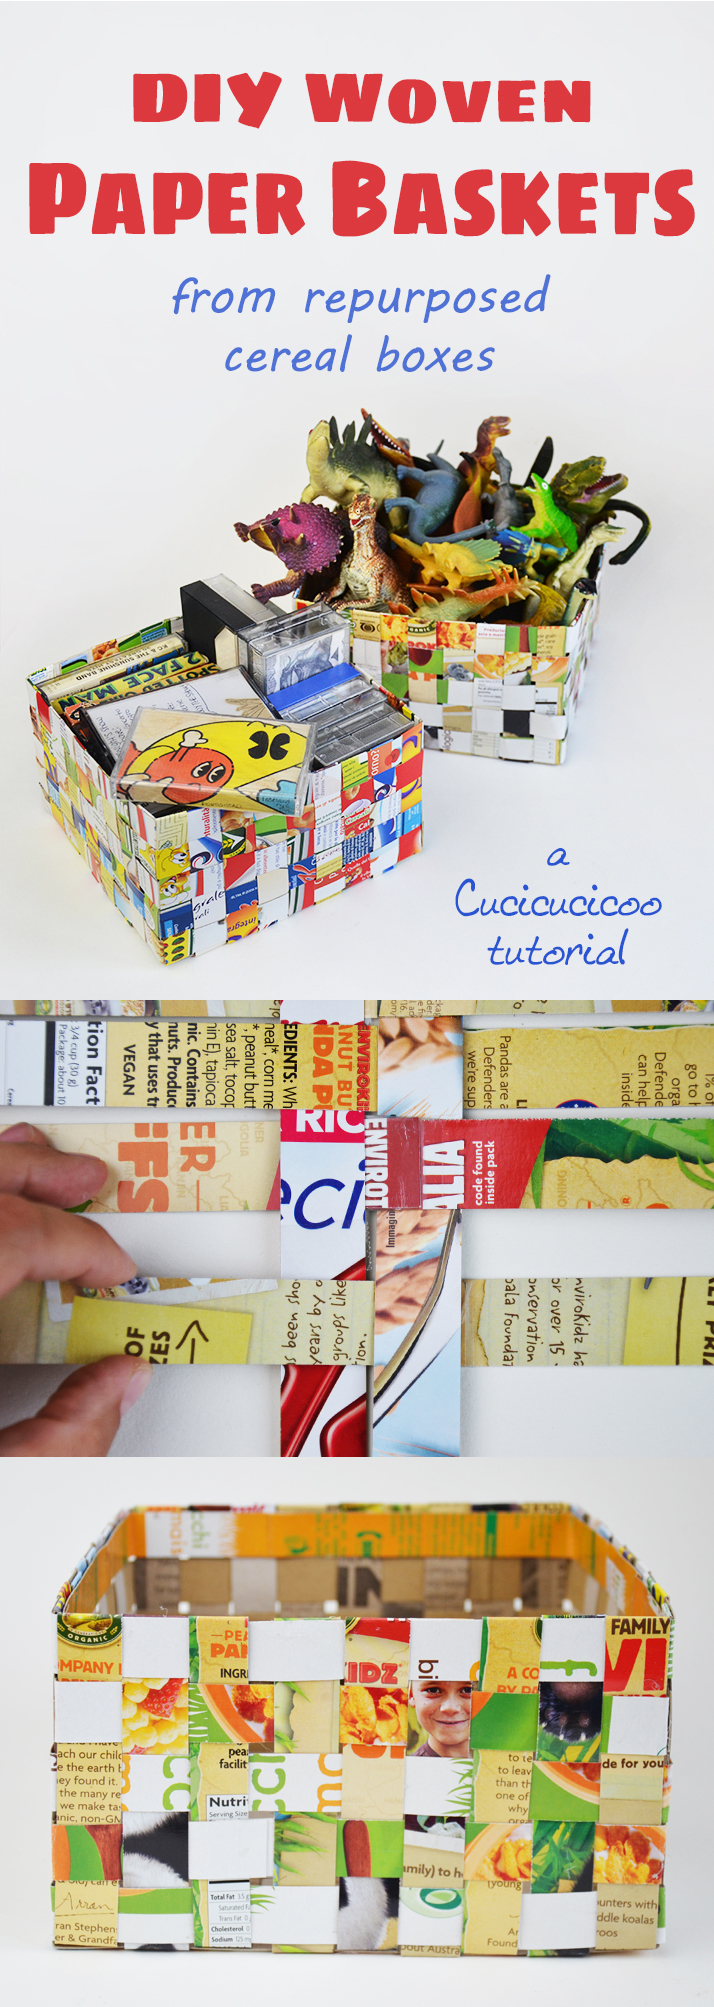 Basket Weaving Using Construction Paper : Diy woven paper baskets from cereal boxes cucicucicoo